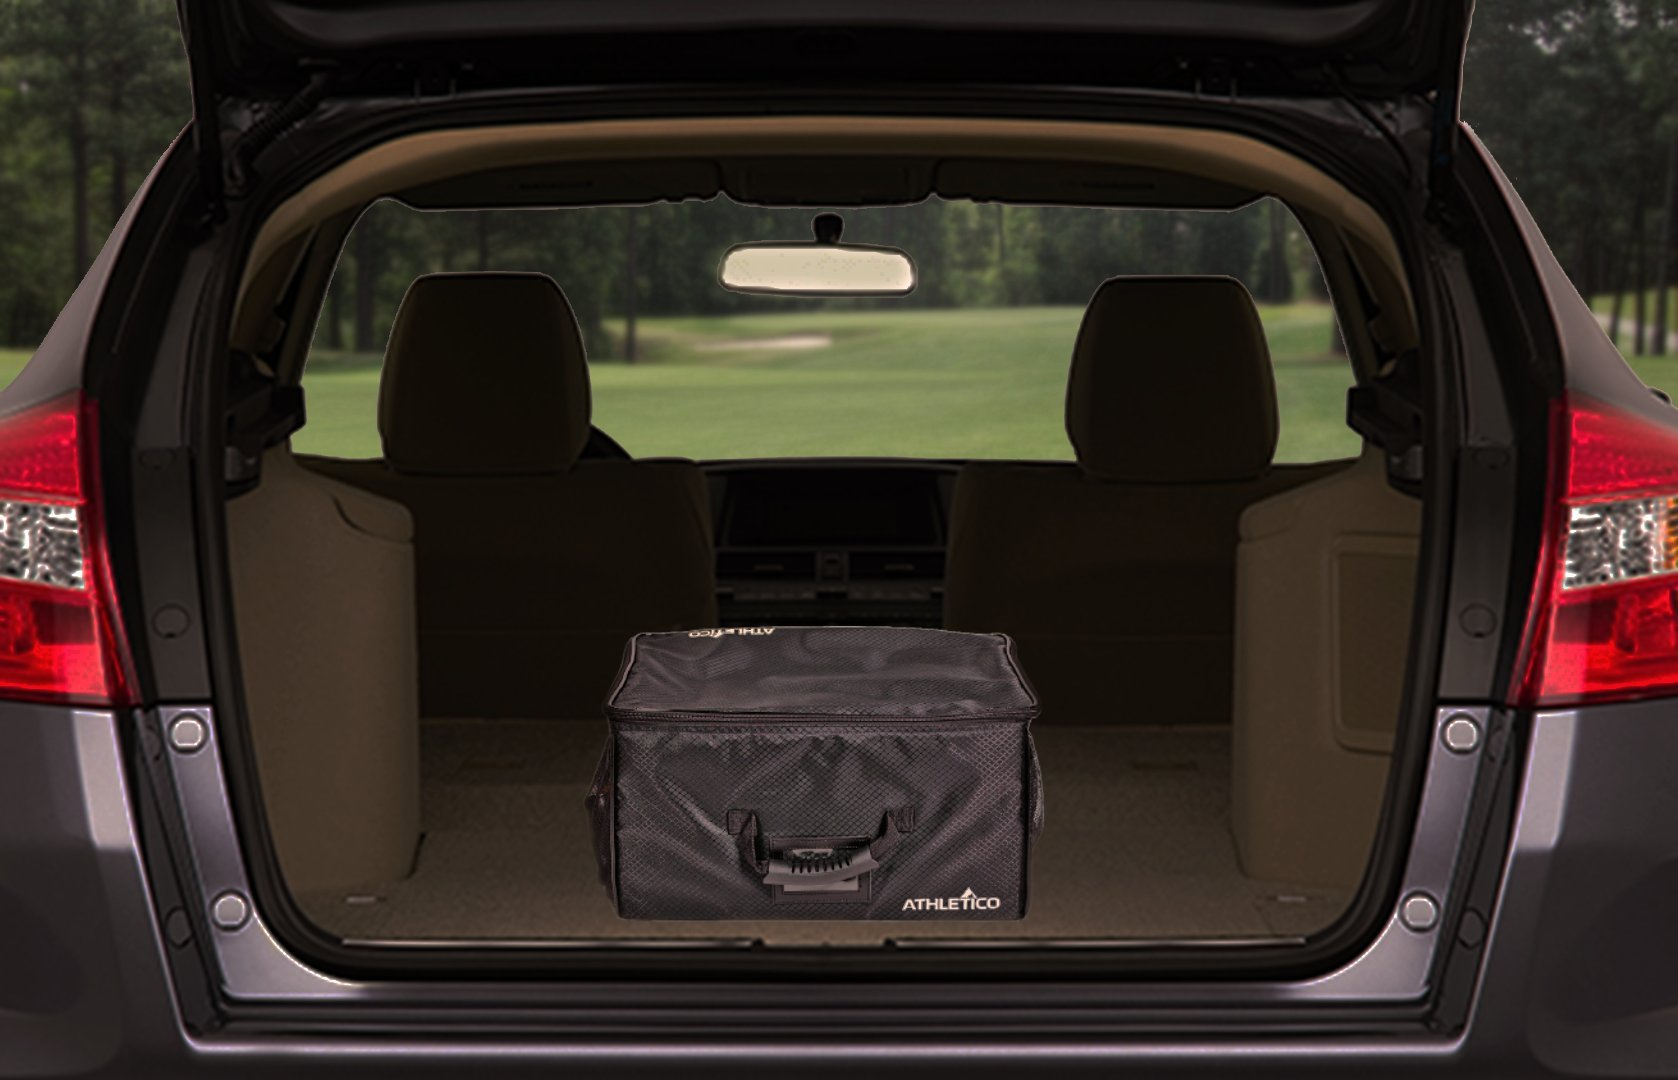 Athletico Golf Trunk Organizer Storage - Car Golf Locker To Store Golf Accessories | Collapsible When Not In Use by Athletico (Image #7)